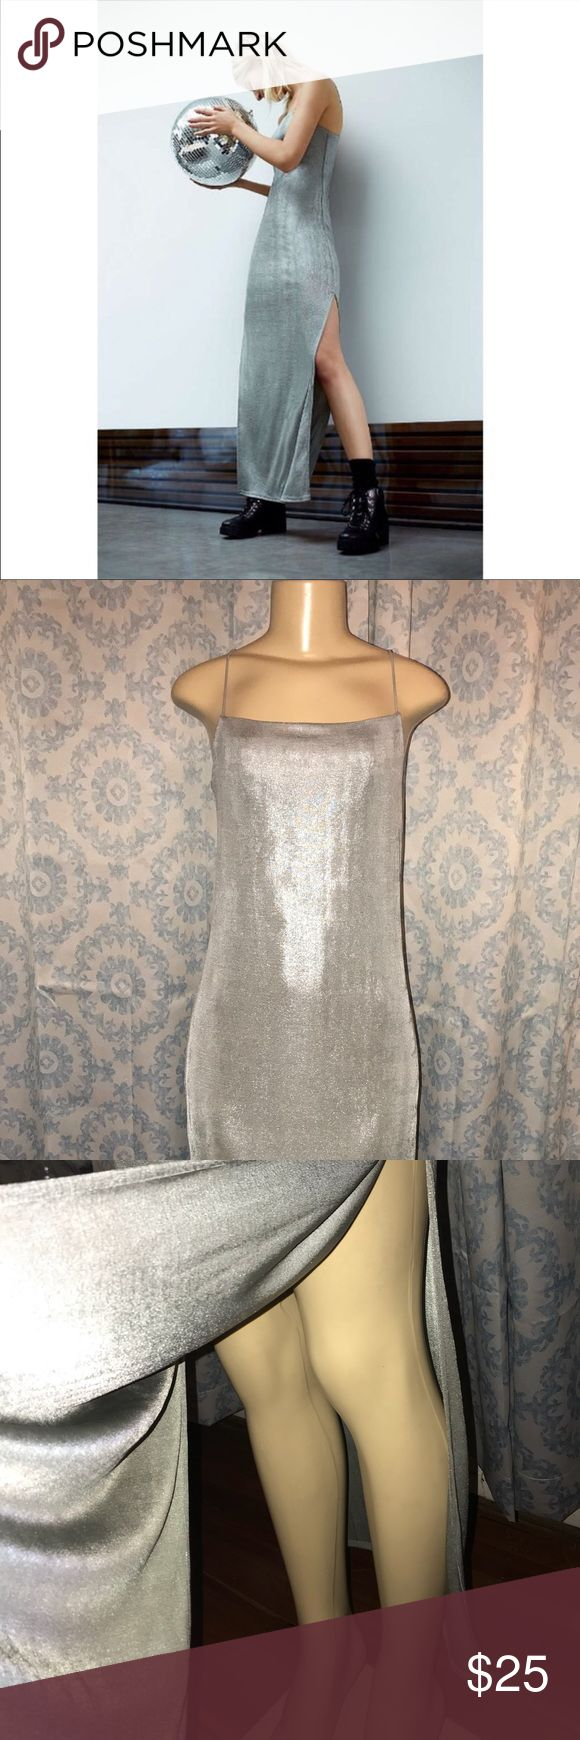 Urban outfitters metallic silver maxi dress Metallic silver maxi dress with thigh high slit. This is a silence and noise/ urban outfitters brand dress. With thin straps. Stretchy material. Perfect for a party! Size large. New never been worn. But no tags!! Urban Outfitters Dresses Maxi